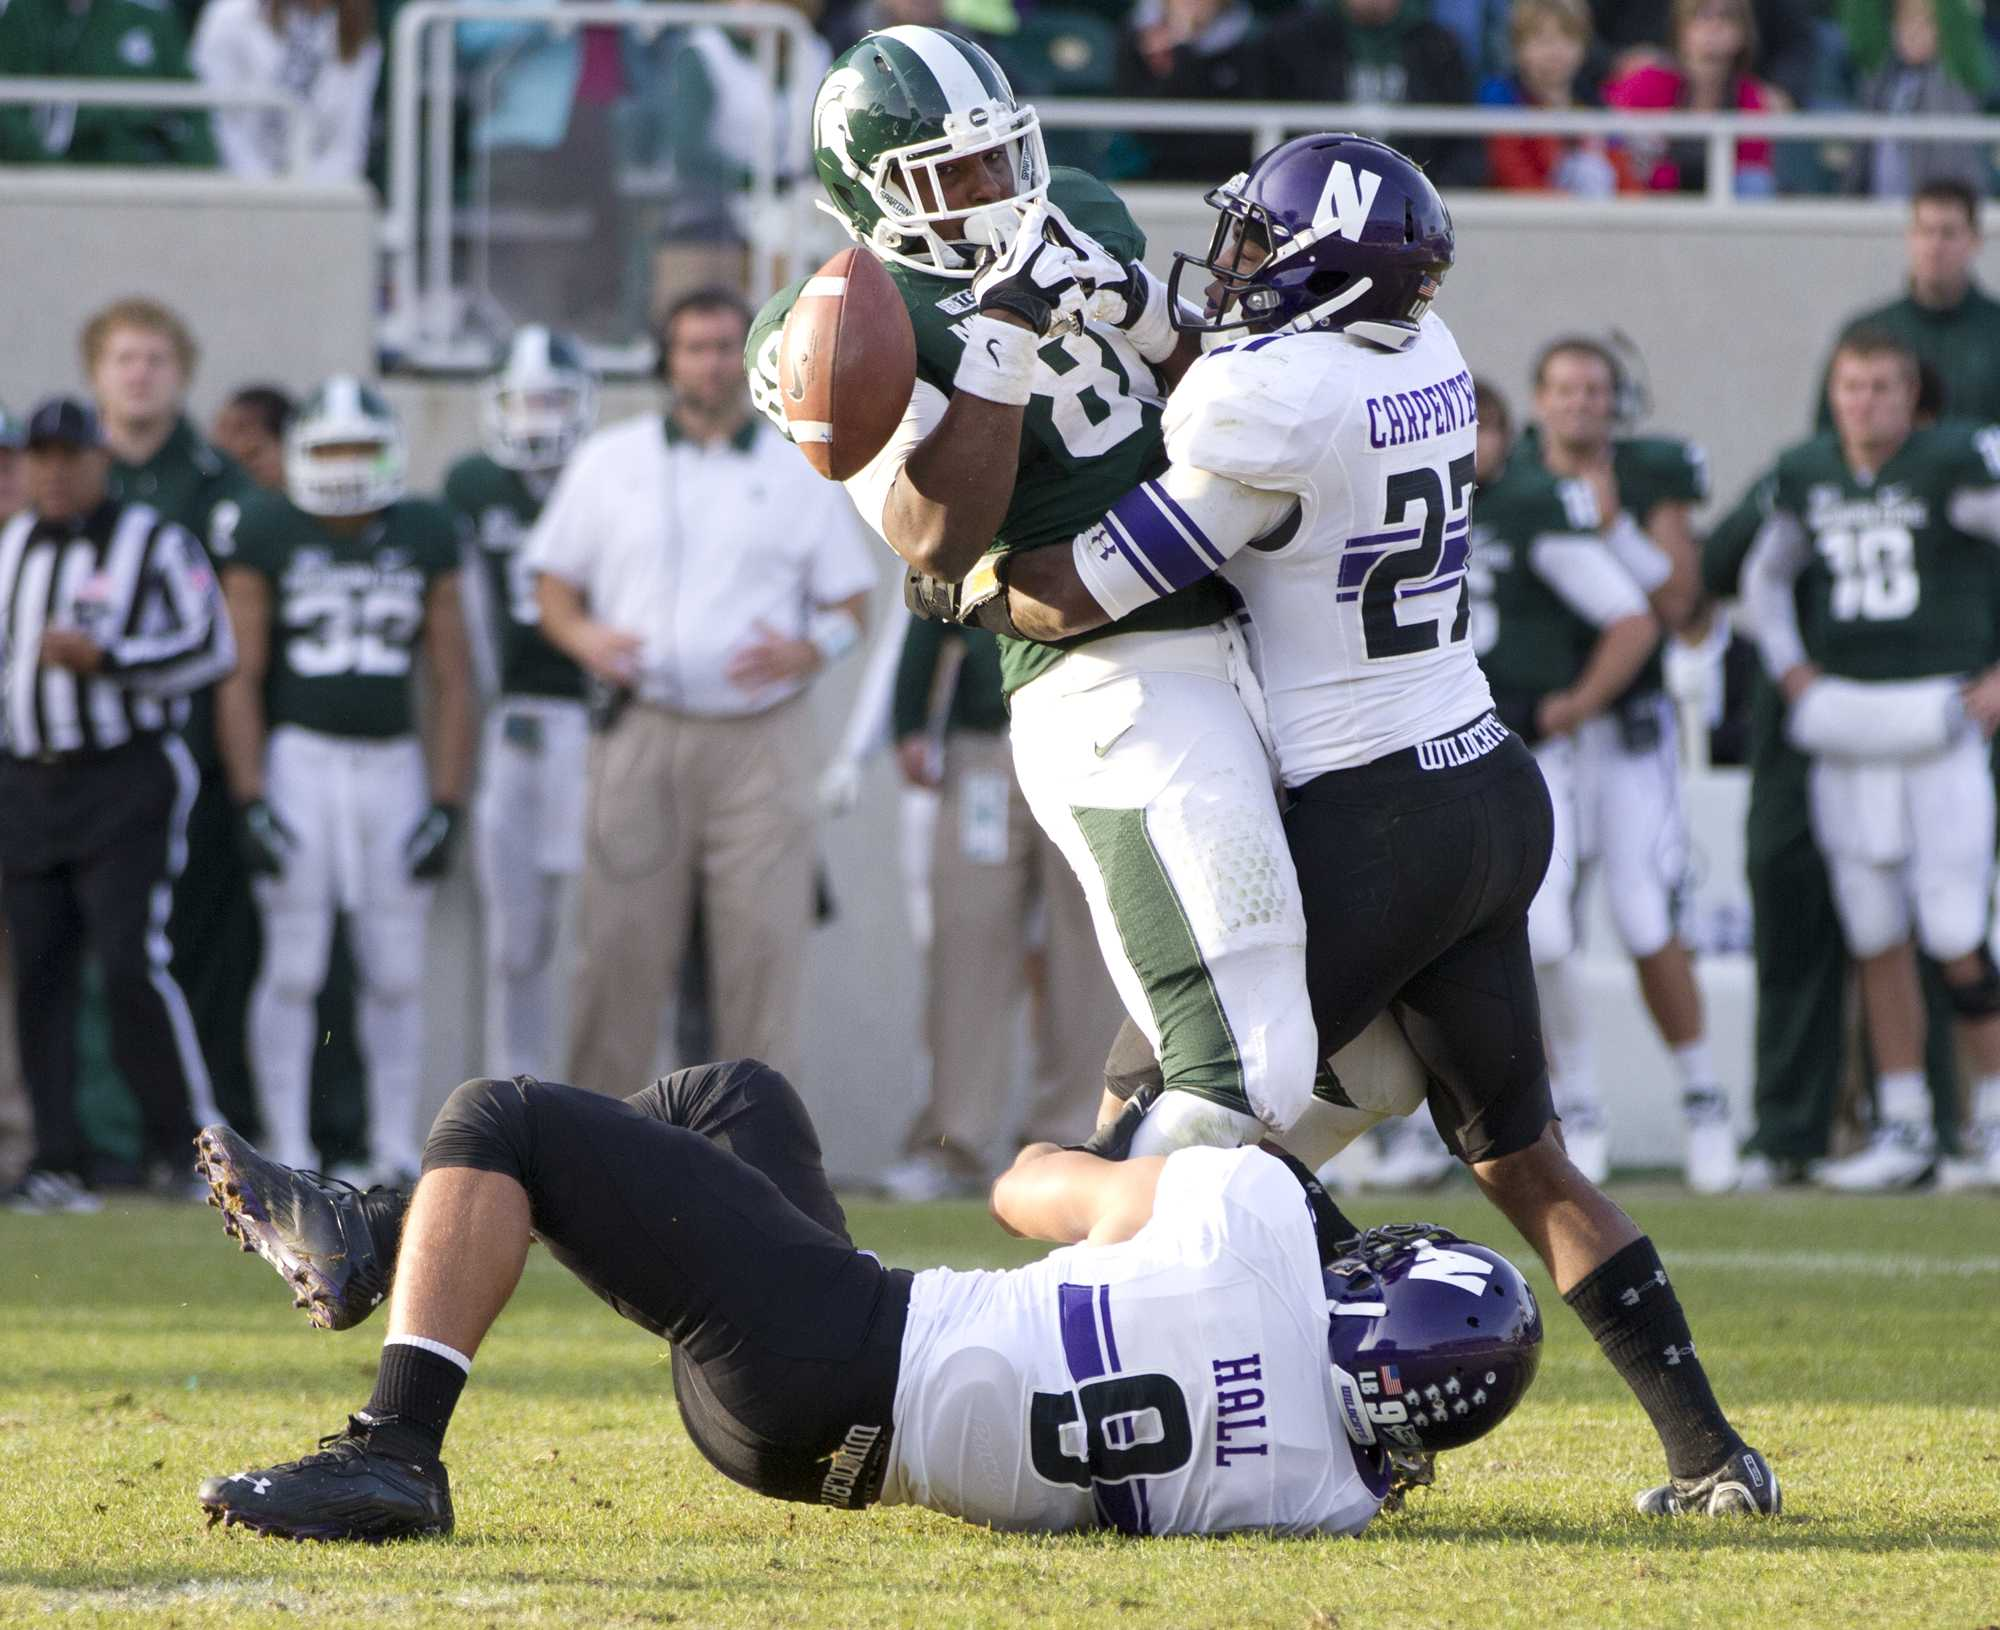 Northwestern safety Jared Carpenter (27) breaks up Michigan State's fourth-down pass at the end of the game. With the incompletion, the Wildcats sealed their 23-20 win.